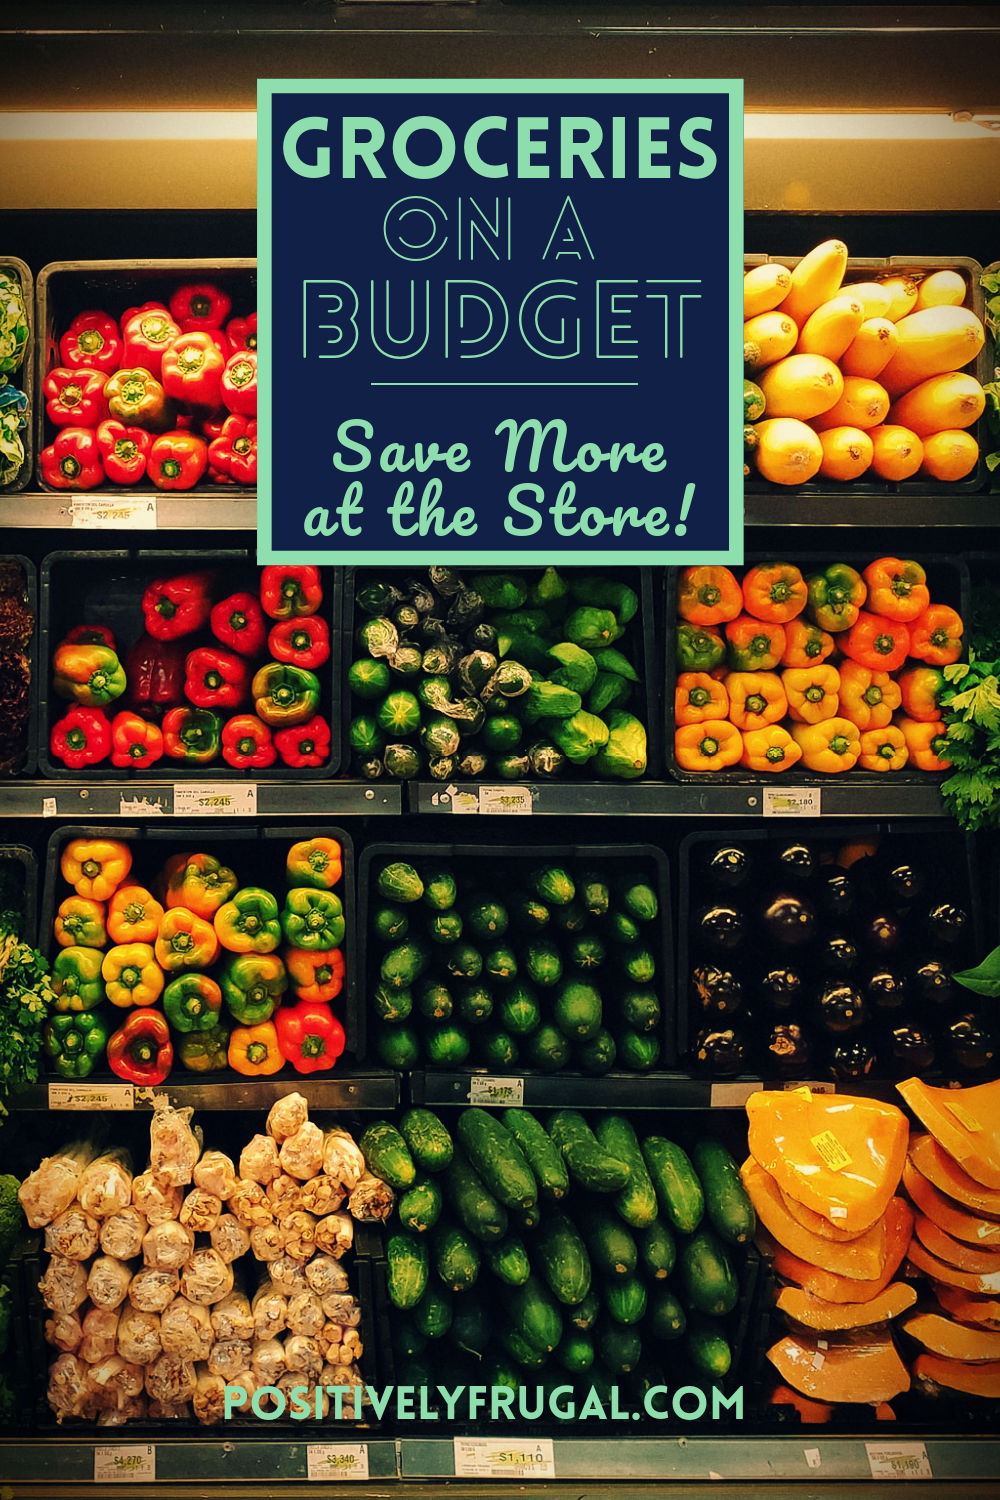 Groceries on a Budget Save More by PositivelyFrugal.com